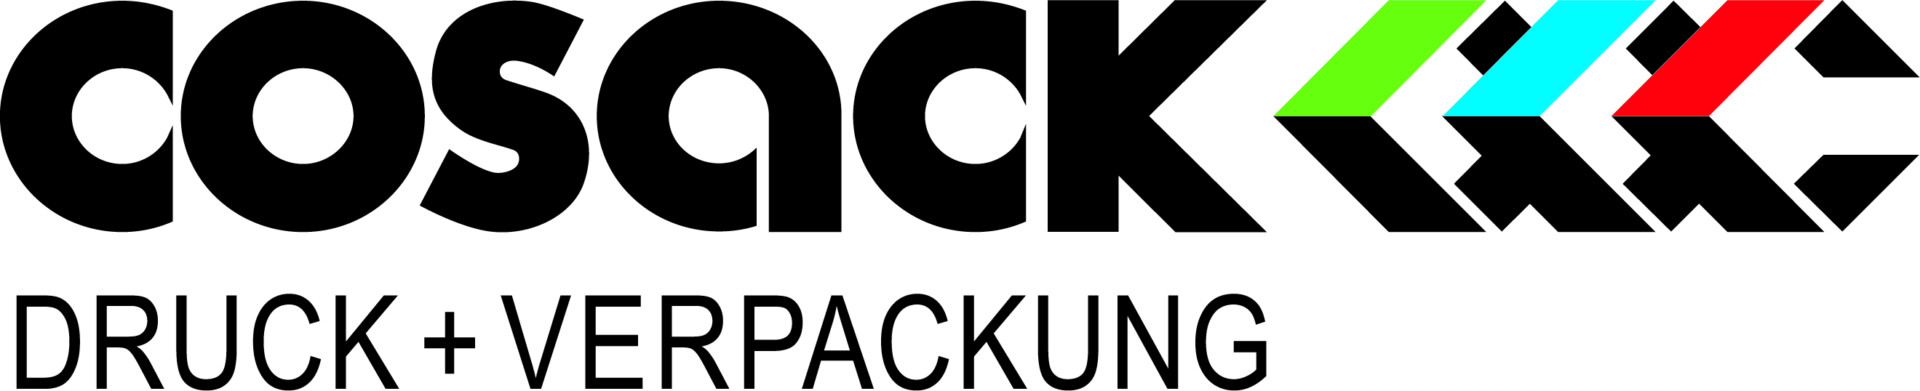 Cosack GmbH & Co. KG